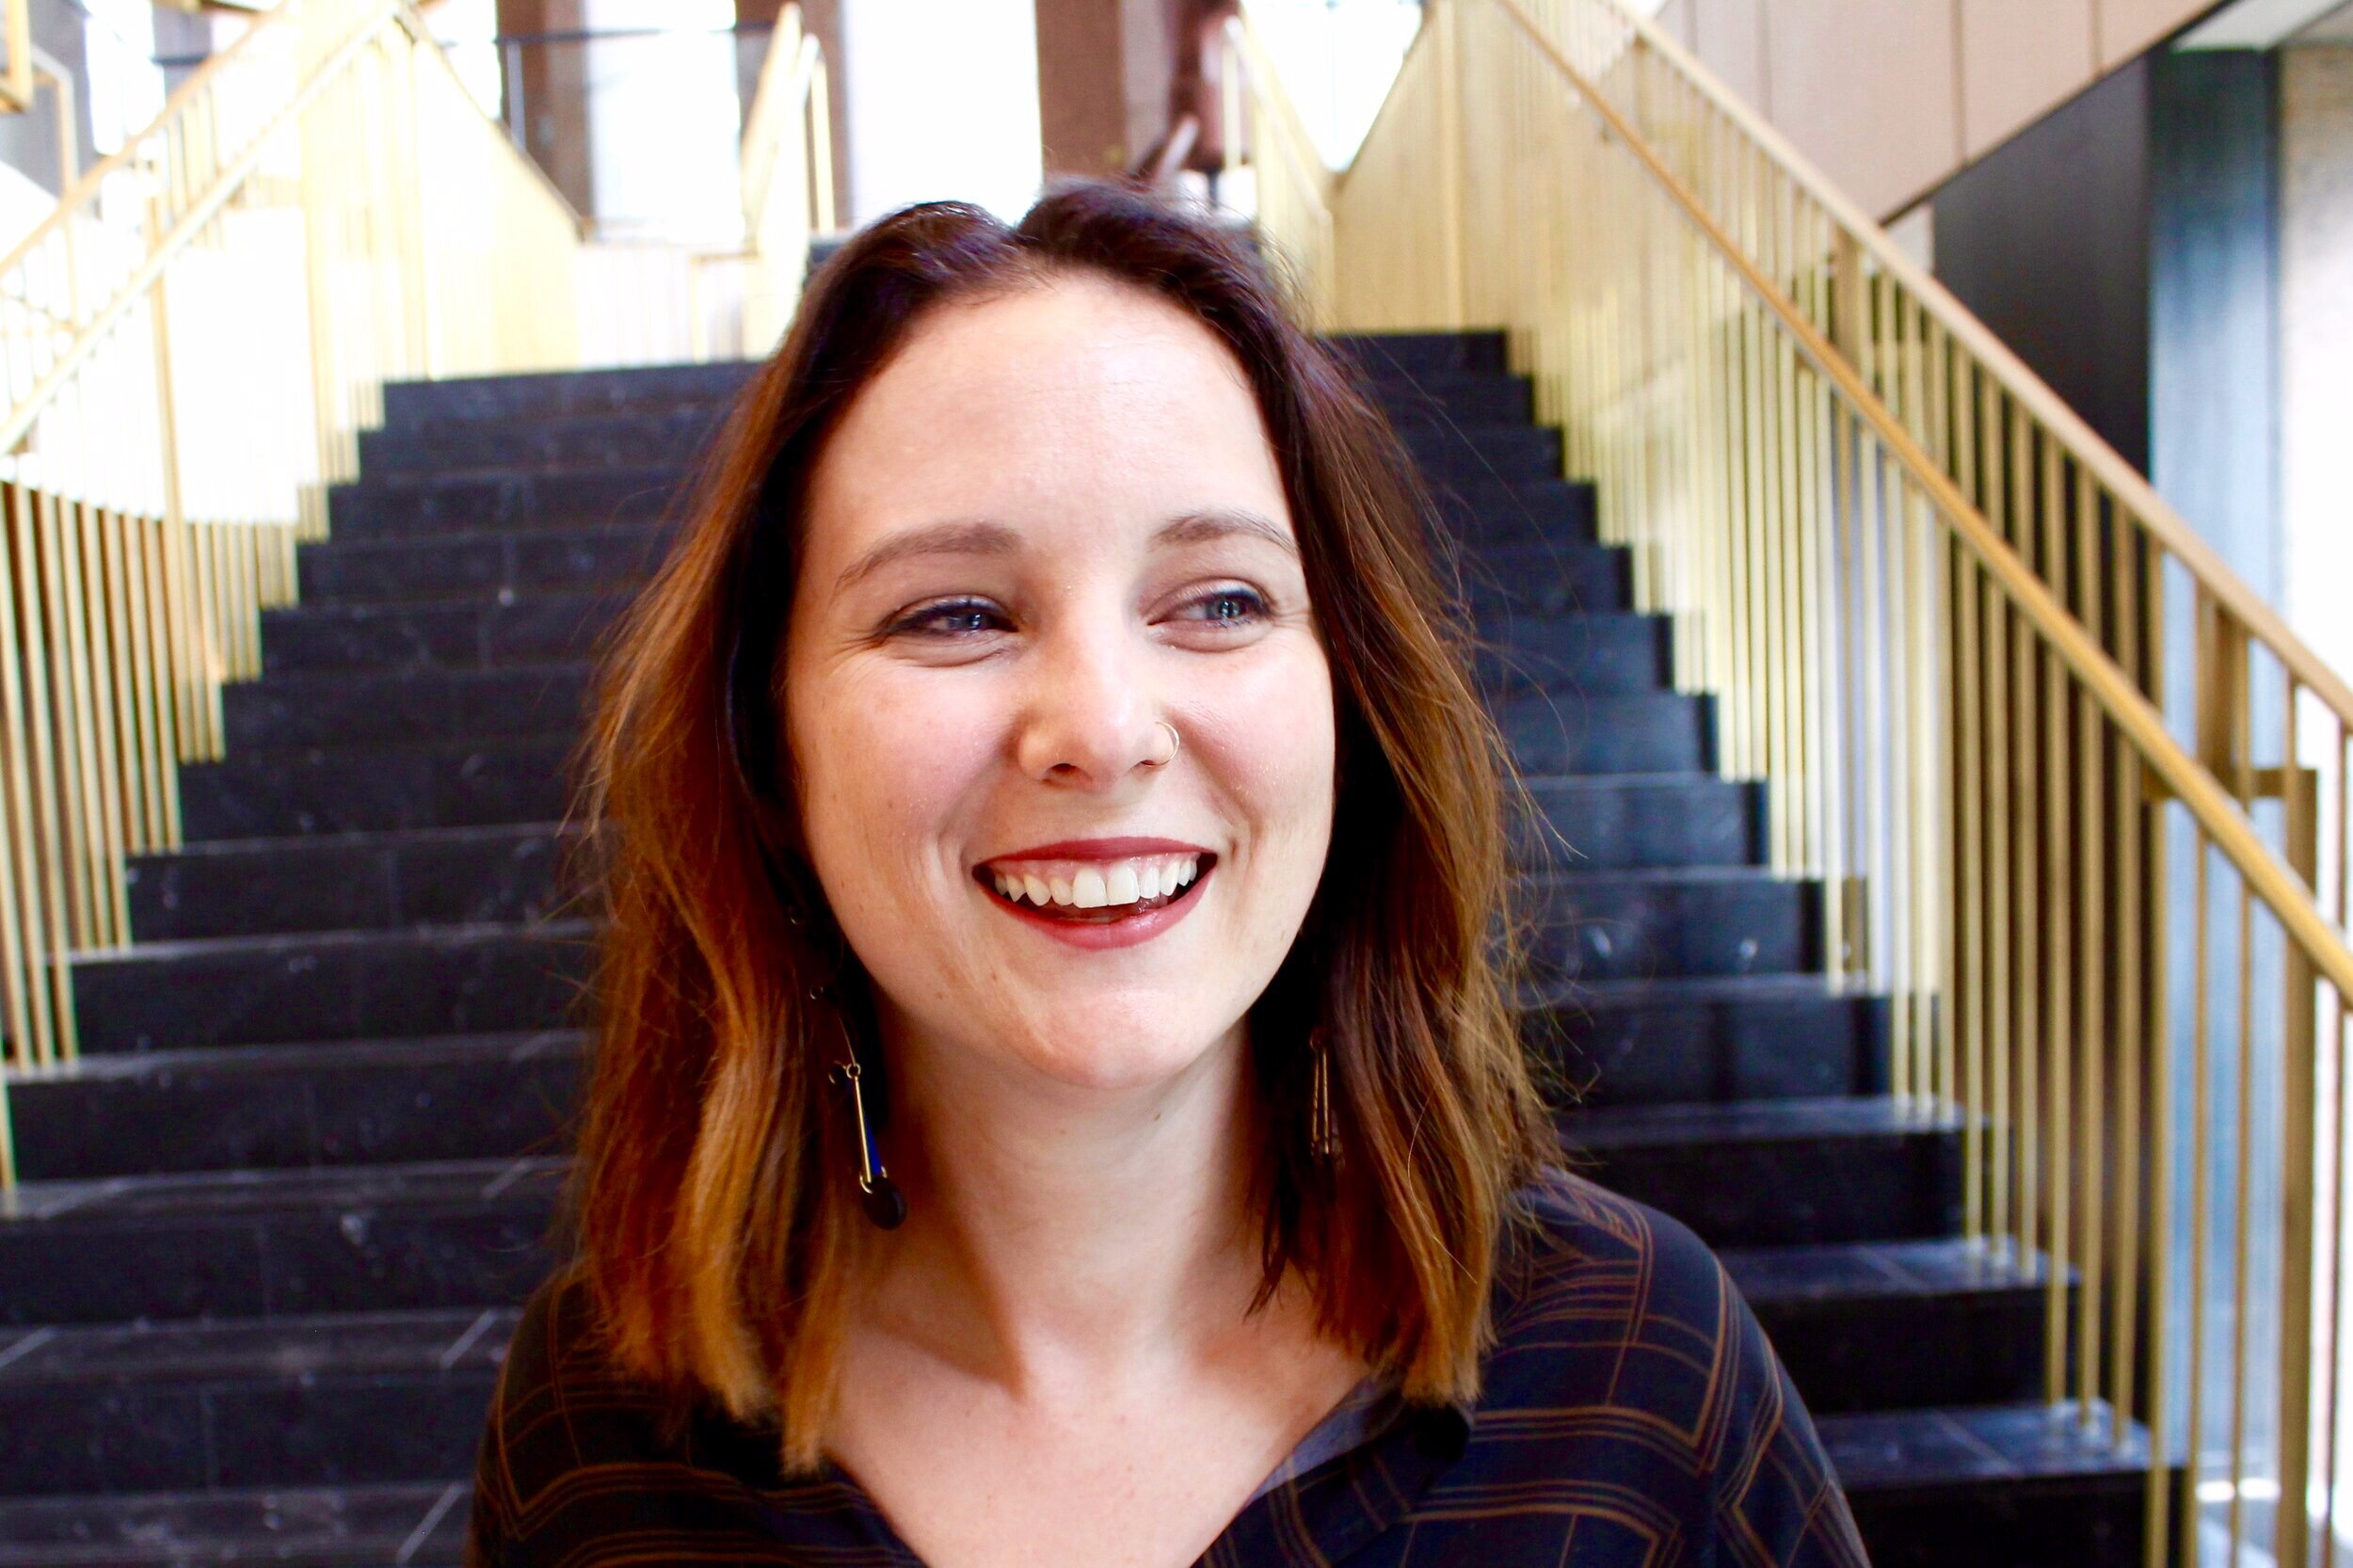 Alicynn Fink    Alicynn Fink found her love for food at an early age, spending weekends in the kitchen after checking out cookbooks from the library. Her passion for all things culinary led to a Bachelor's Degree in Hotel Restaurant Management from Northern Arizona University. Fink later received her master's in Food, Culture and Communication from the University of Gastronomic Science in Bra, Italy. In 2014, Alicynn and her husband Kevin moved to Austin, Texas to open Emmer & Rye. Emmer & Rye brings a unique dining experience to Austin and continues to evolve the use of sustainable and indigenous foods. Emmer & Rye has received numerous accolades, including being named Austin American-Statesman's Best Restaurant of 2018.In 2018,the group opened Henbit and in 2019 they opened TLV, both are quick casual concepts in the Fareground Food Hall. Alicynn manages all operations for the restaurant group. Kevin and Alicynn have one son,Hudson.